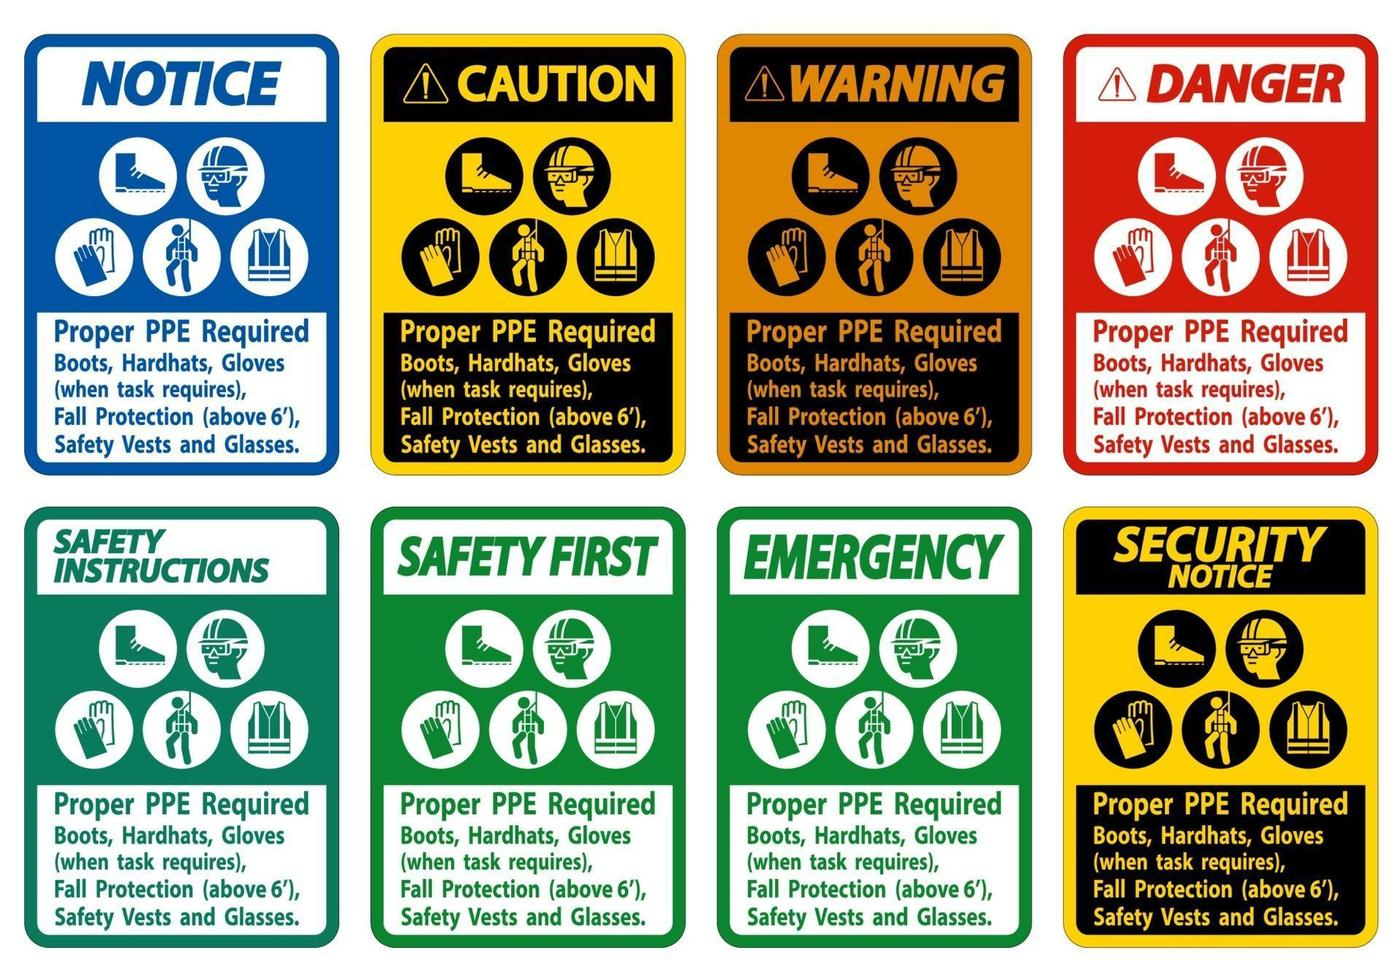 Proper PPE Required Boots, Hardhats, Gloves When Task Requires Fall Protection With PPE Symbols vector